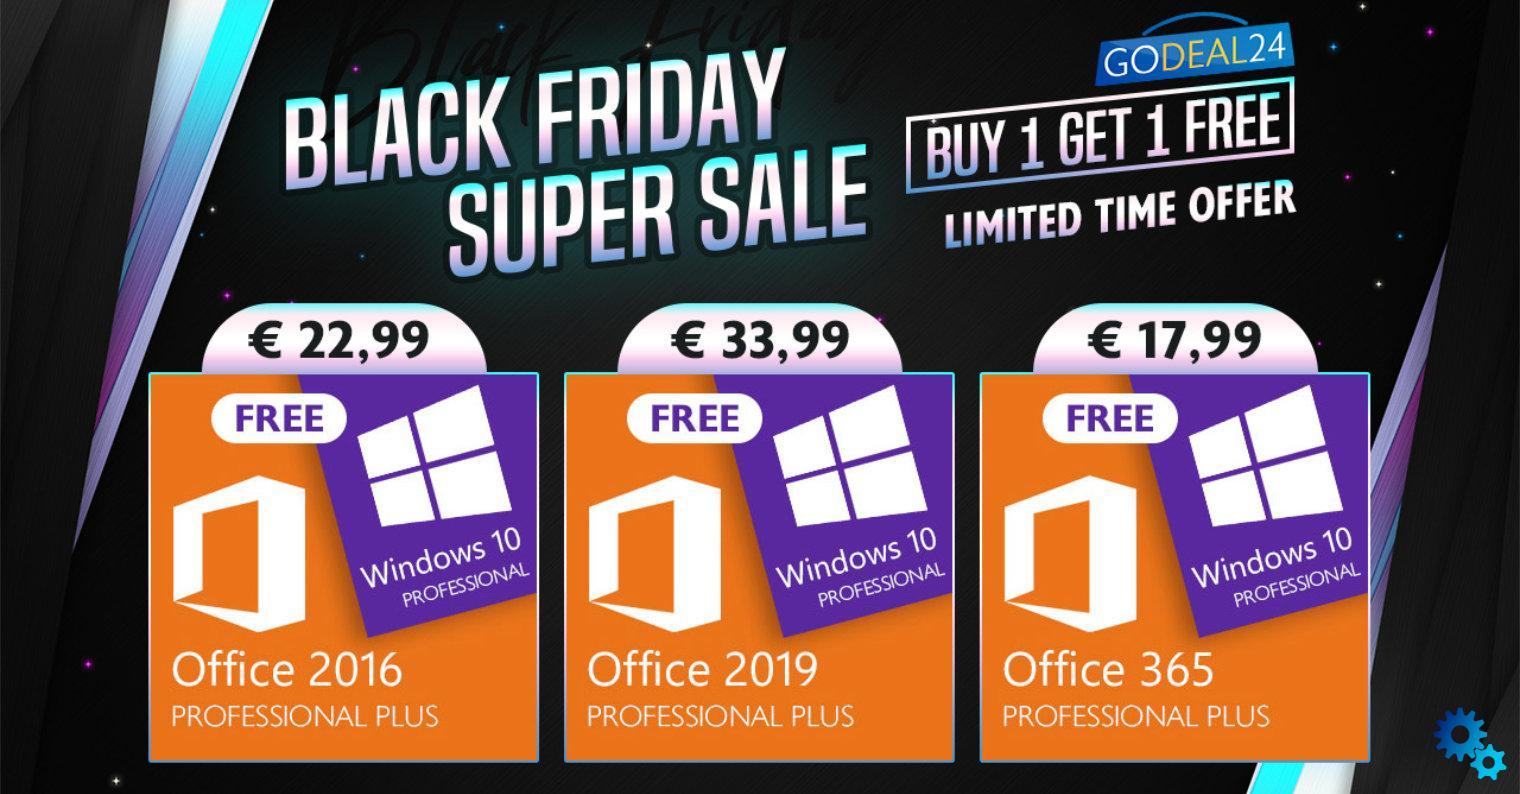 Black Friday has arrived on Godeal24 – so you can get Windows 10 for free